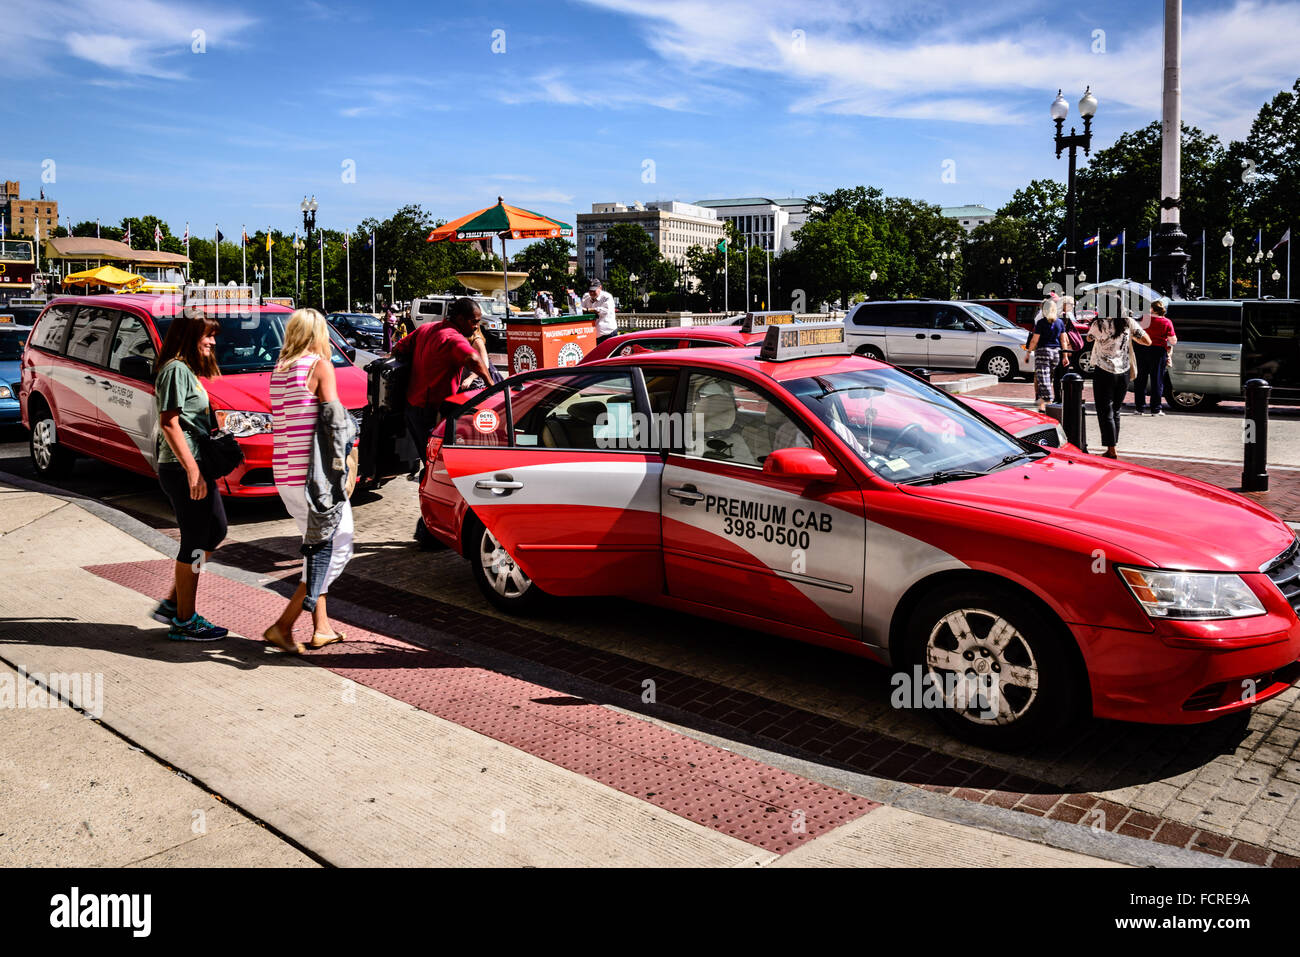 DC Taxicabs in new uniform livery, Union Station, Washington DC - Stock Image